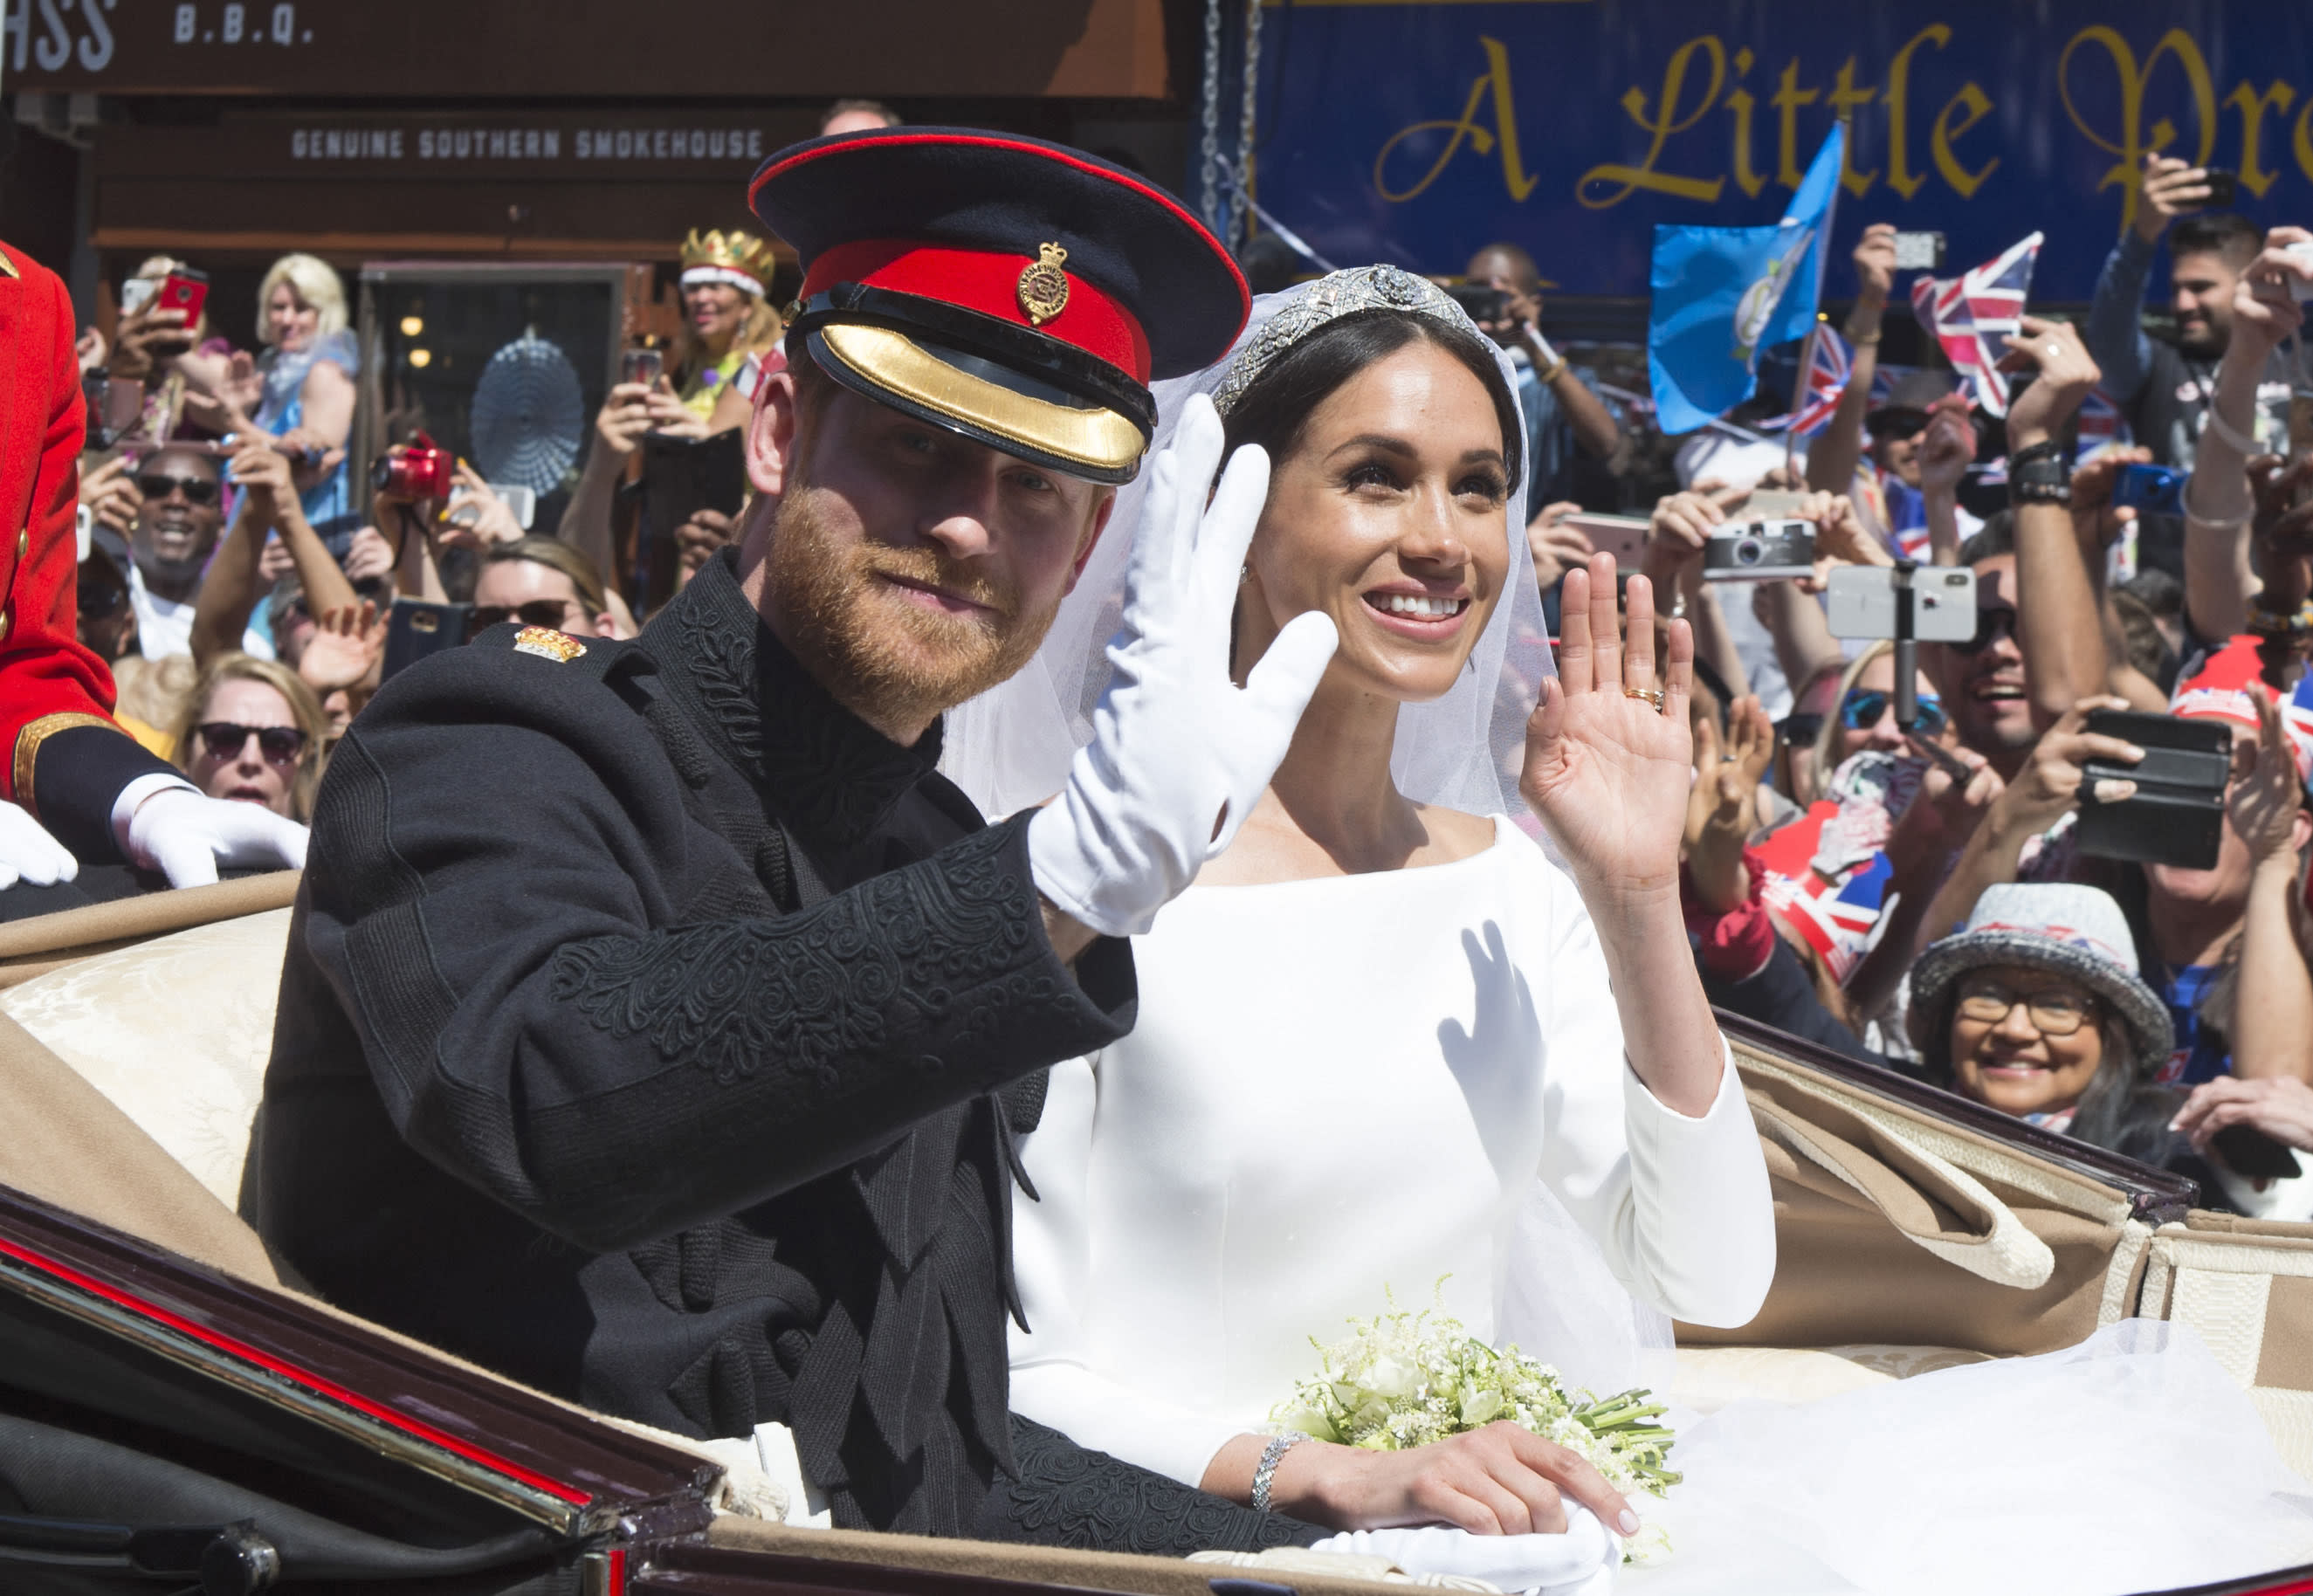 "January 20th 2020 - Buckingham Palace has announced that Prince Harry and Duchess Meghan will no longer use ""royal highness"" titles and will not receive public money for their royal duties. Additionally, as part of the terms of surrendering their royal responsibilities, Harry and Meghan will repay the $3.1 million cost of taxpayers' money that was spent renovating Frogmore Cottage - their home near Windsor Castle. - January 9th 2020 - Prince Harry The Duke of Sussex and Duchess Meghan of Sussex intend to step back their duties and responsibilities as senior members of the British Royal Family. - File Photo by: zz/KGC-03/STAR MAX/IPx 2018 5/19/18 Prince Harry The Duke of Sussex and Meghan Markle The Duchess of Sussex - man and wife - at their wedding ceremony held at St. George's Chapel on the grounds of Windsor Castle. (Windsor, England, UK)"